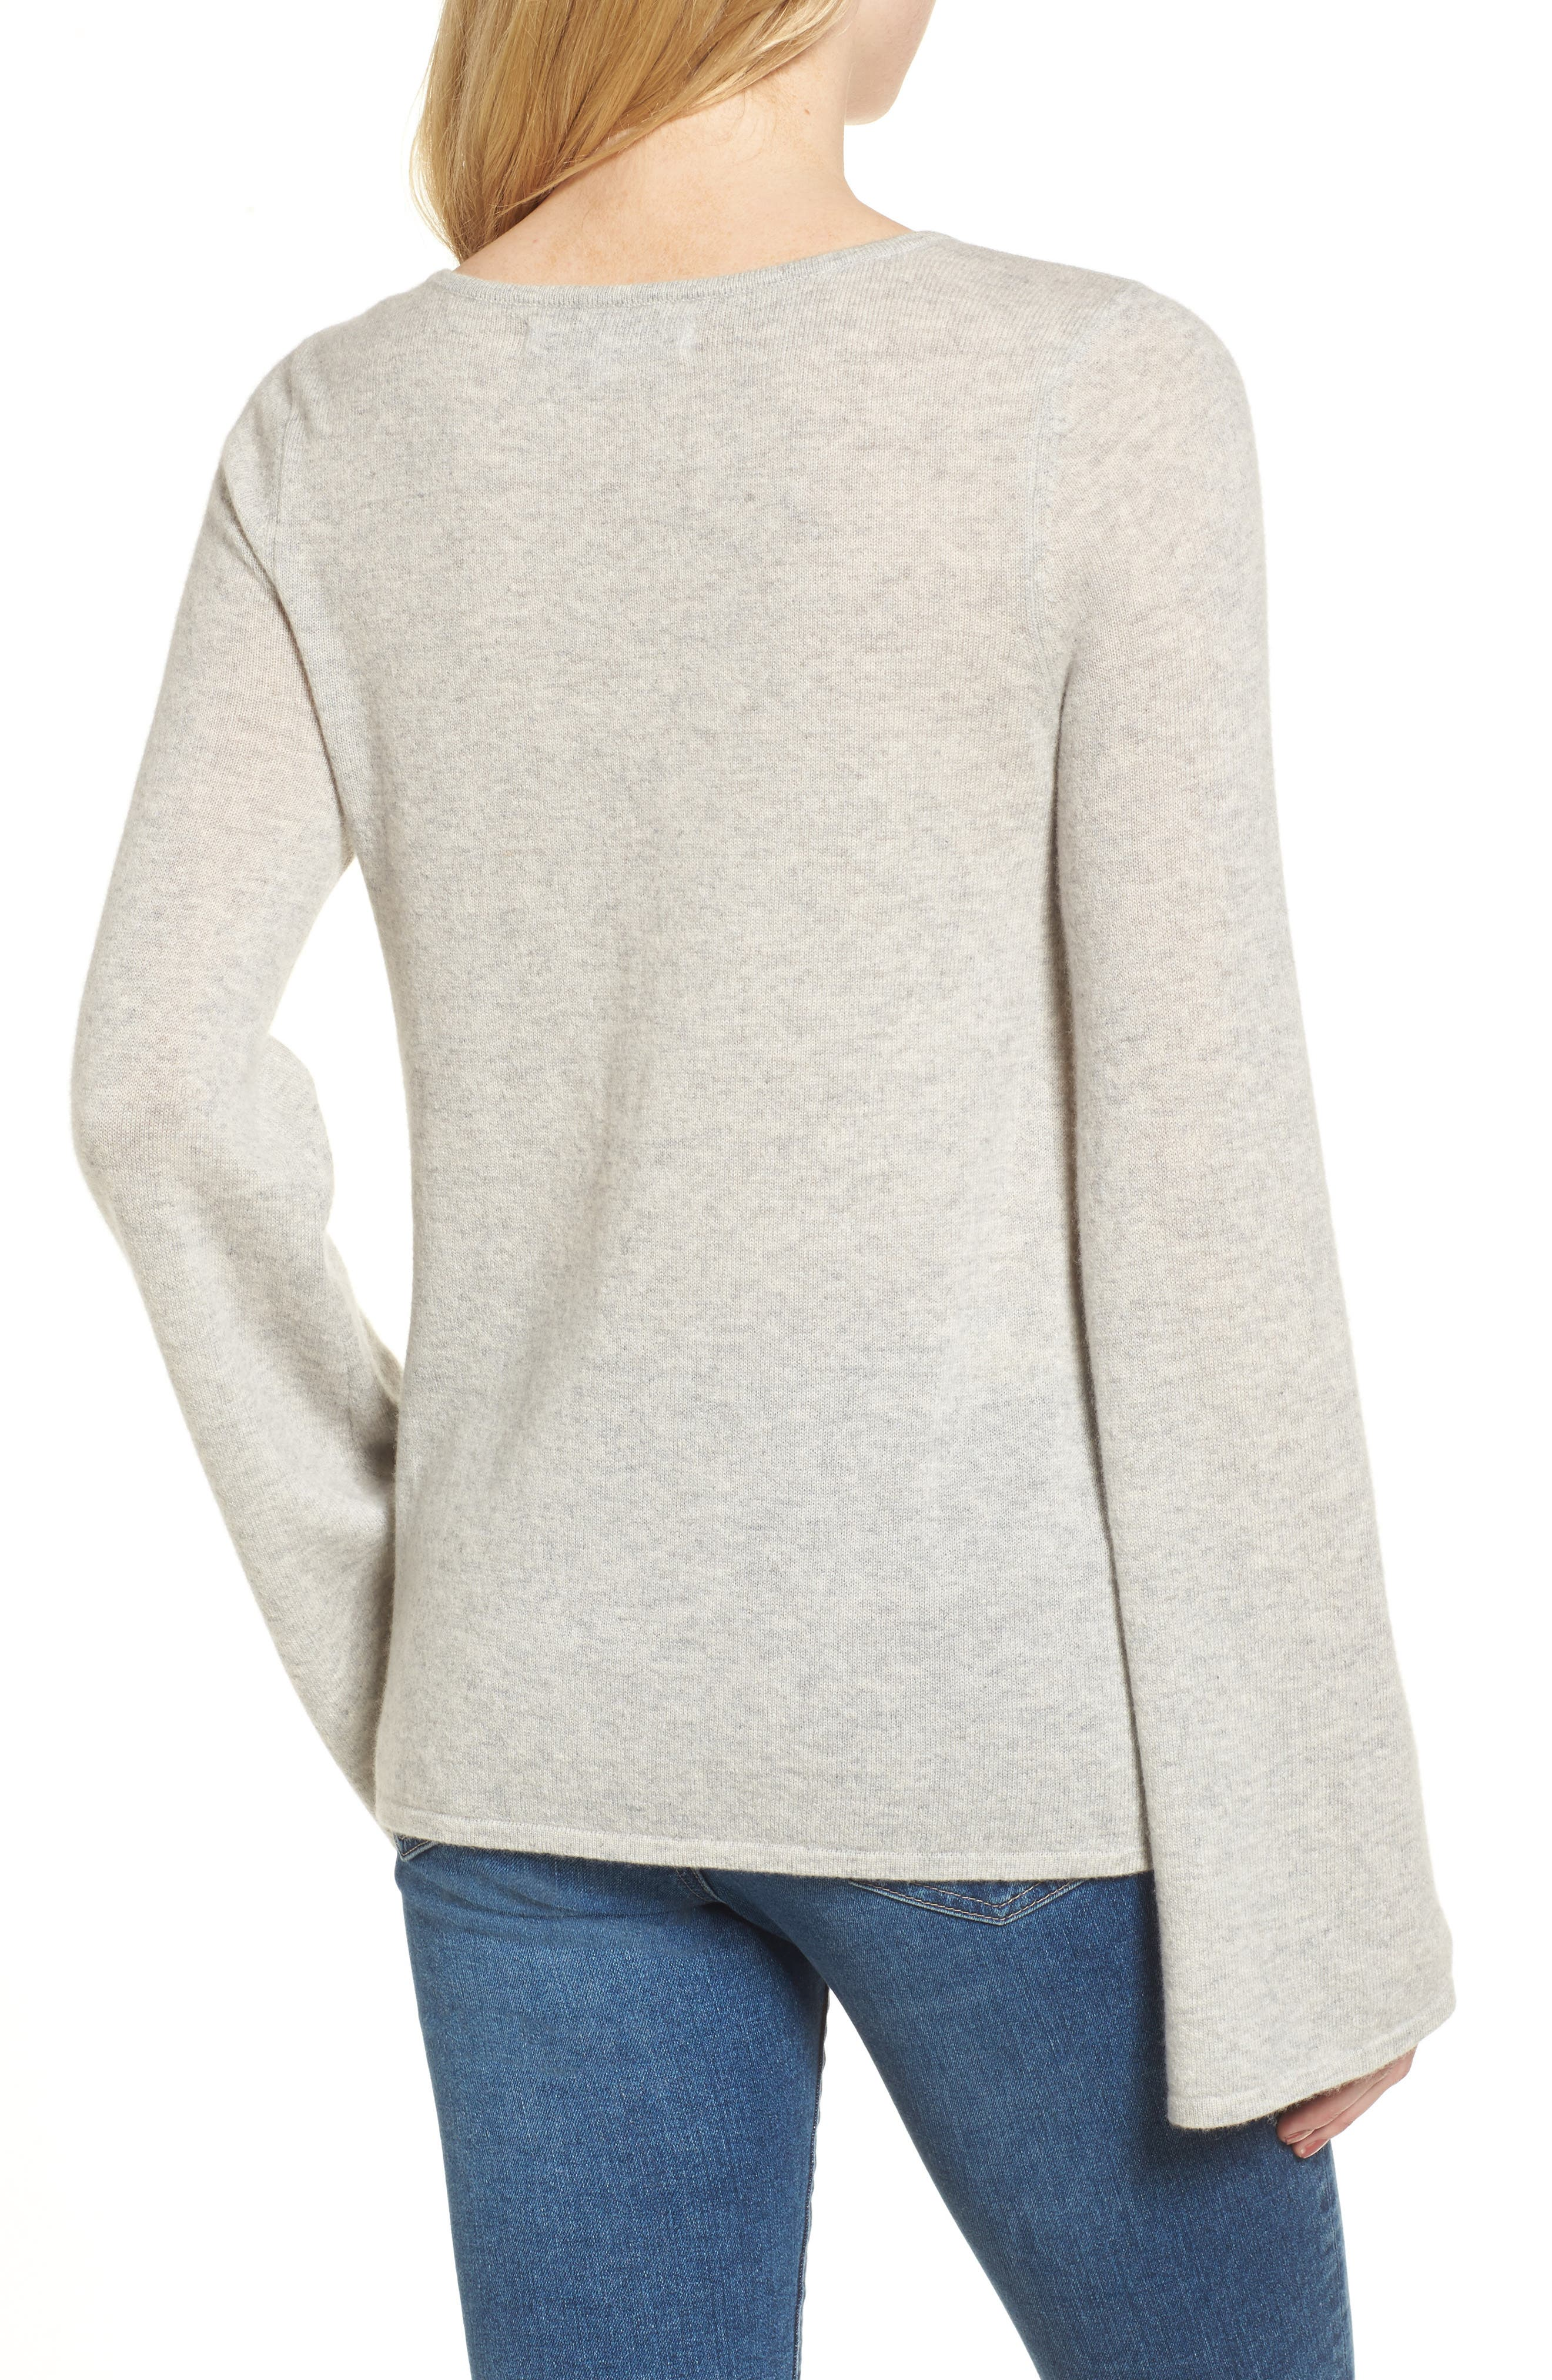 Marylee Cashmere Top,                             Alternate thumbnail 2, color,